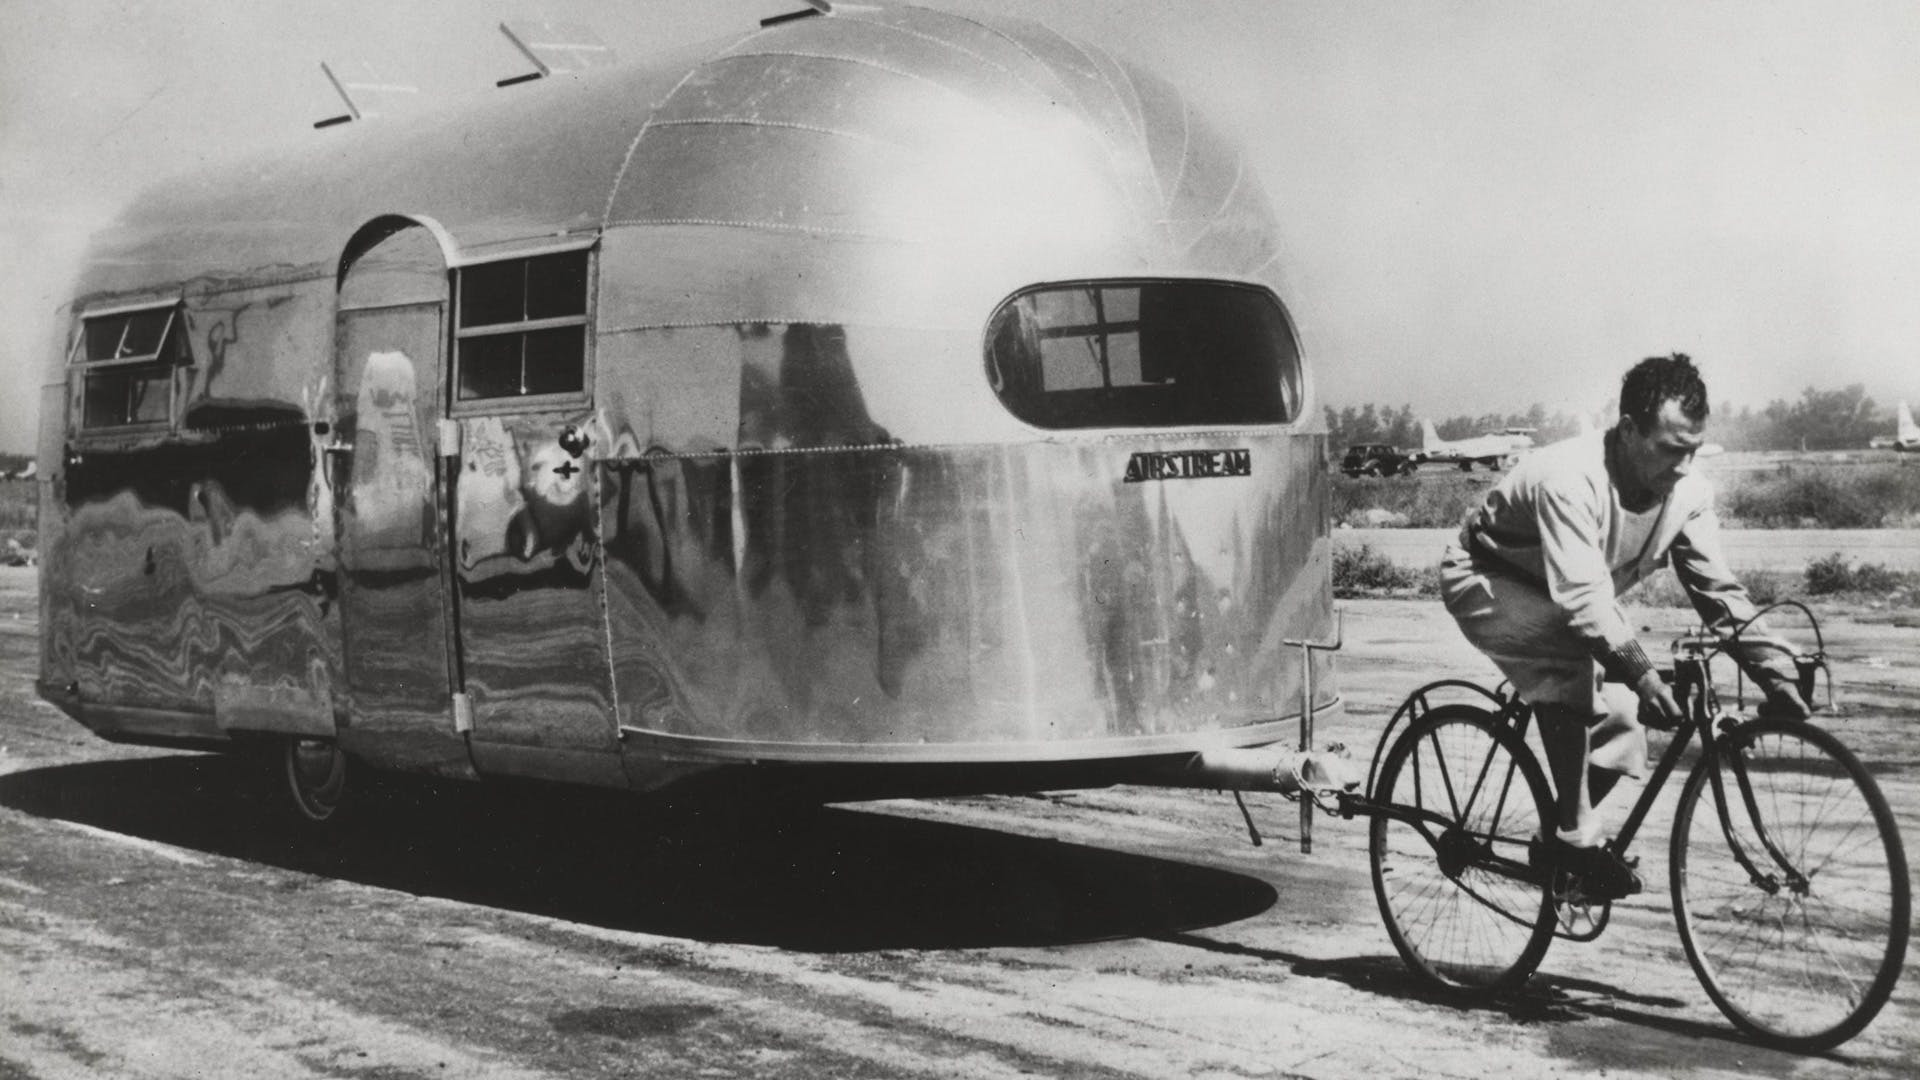 Wally-Byam-Airstream-history-1947-pulled-by-French-cyclist-Alfred-Letourneur